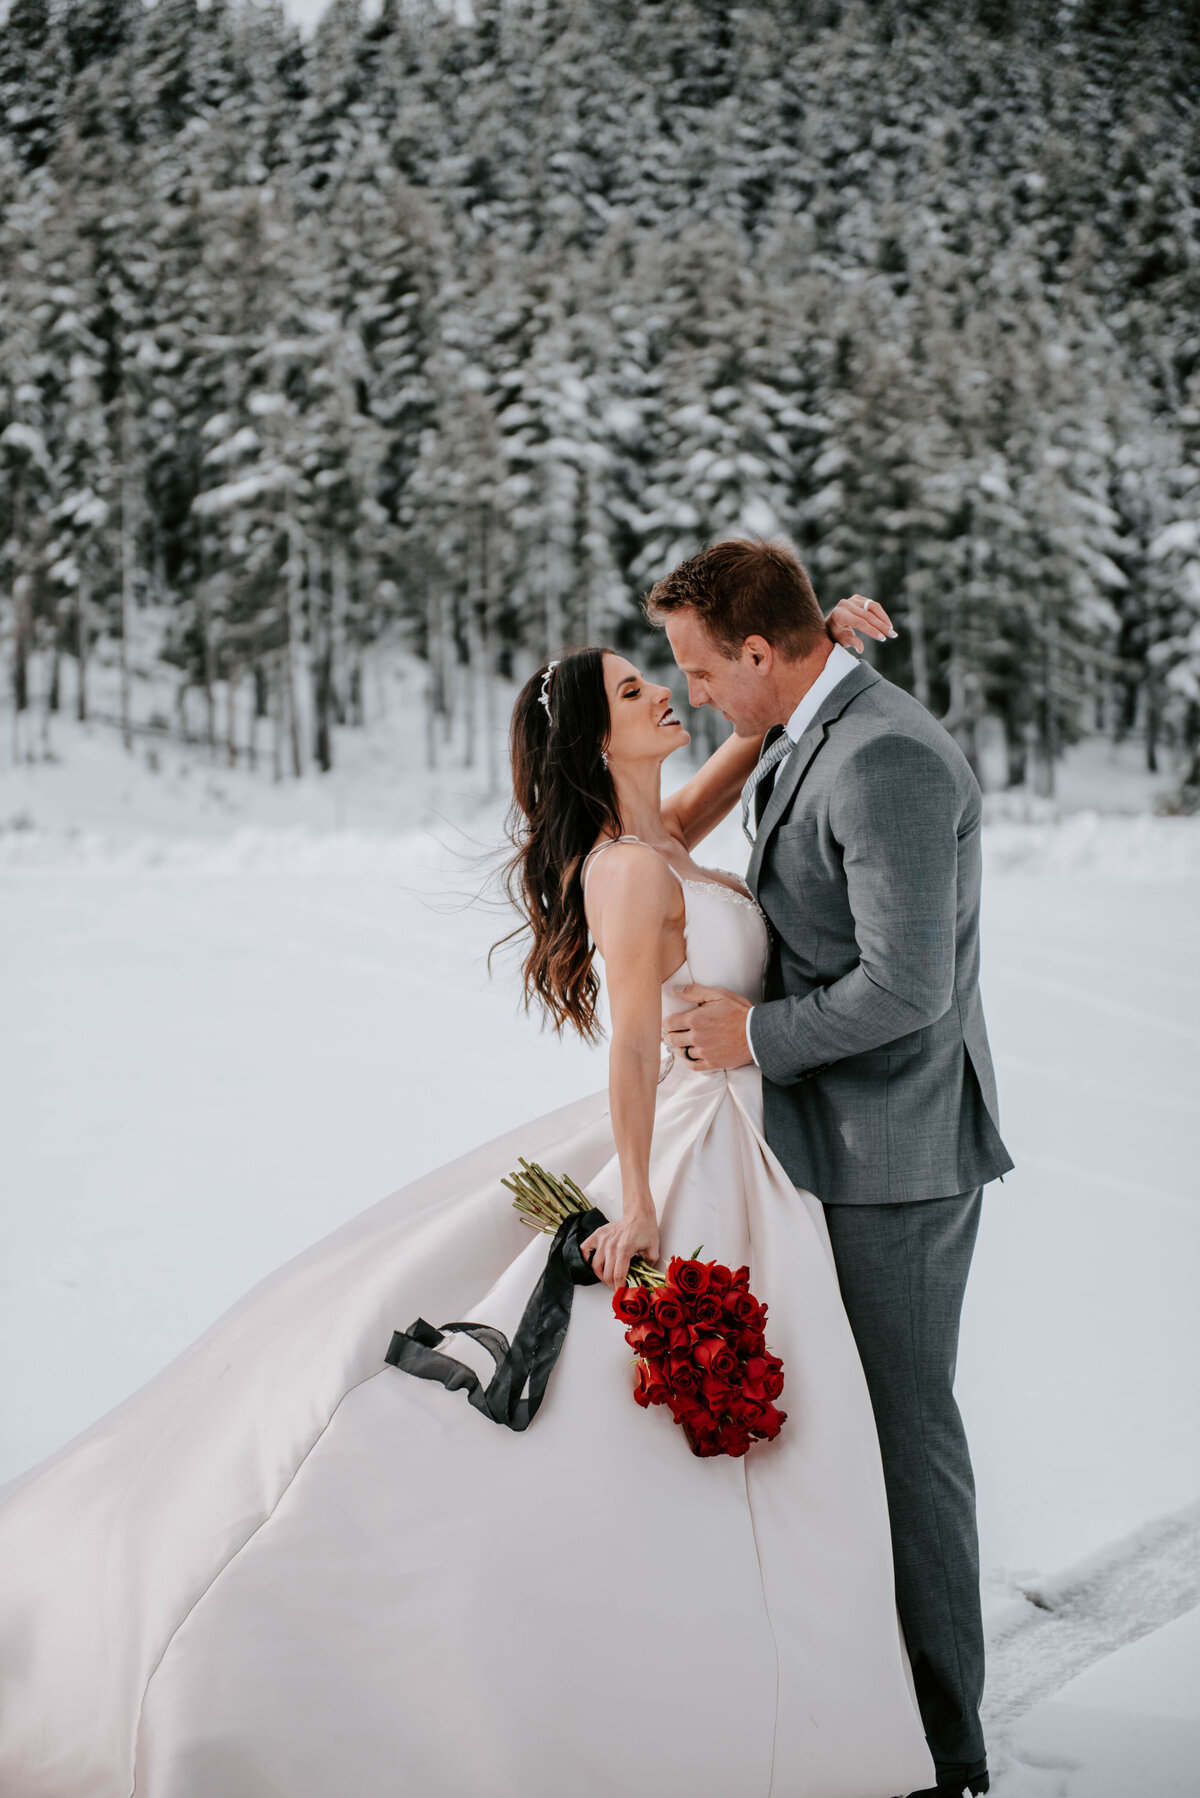 mt-bachelor-snow-winter-elopement-bend-oregon-wedding-photographer-2094